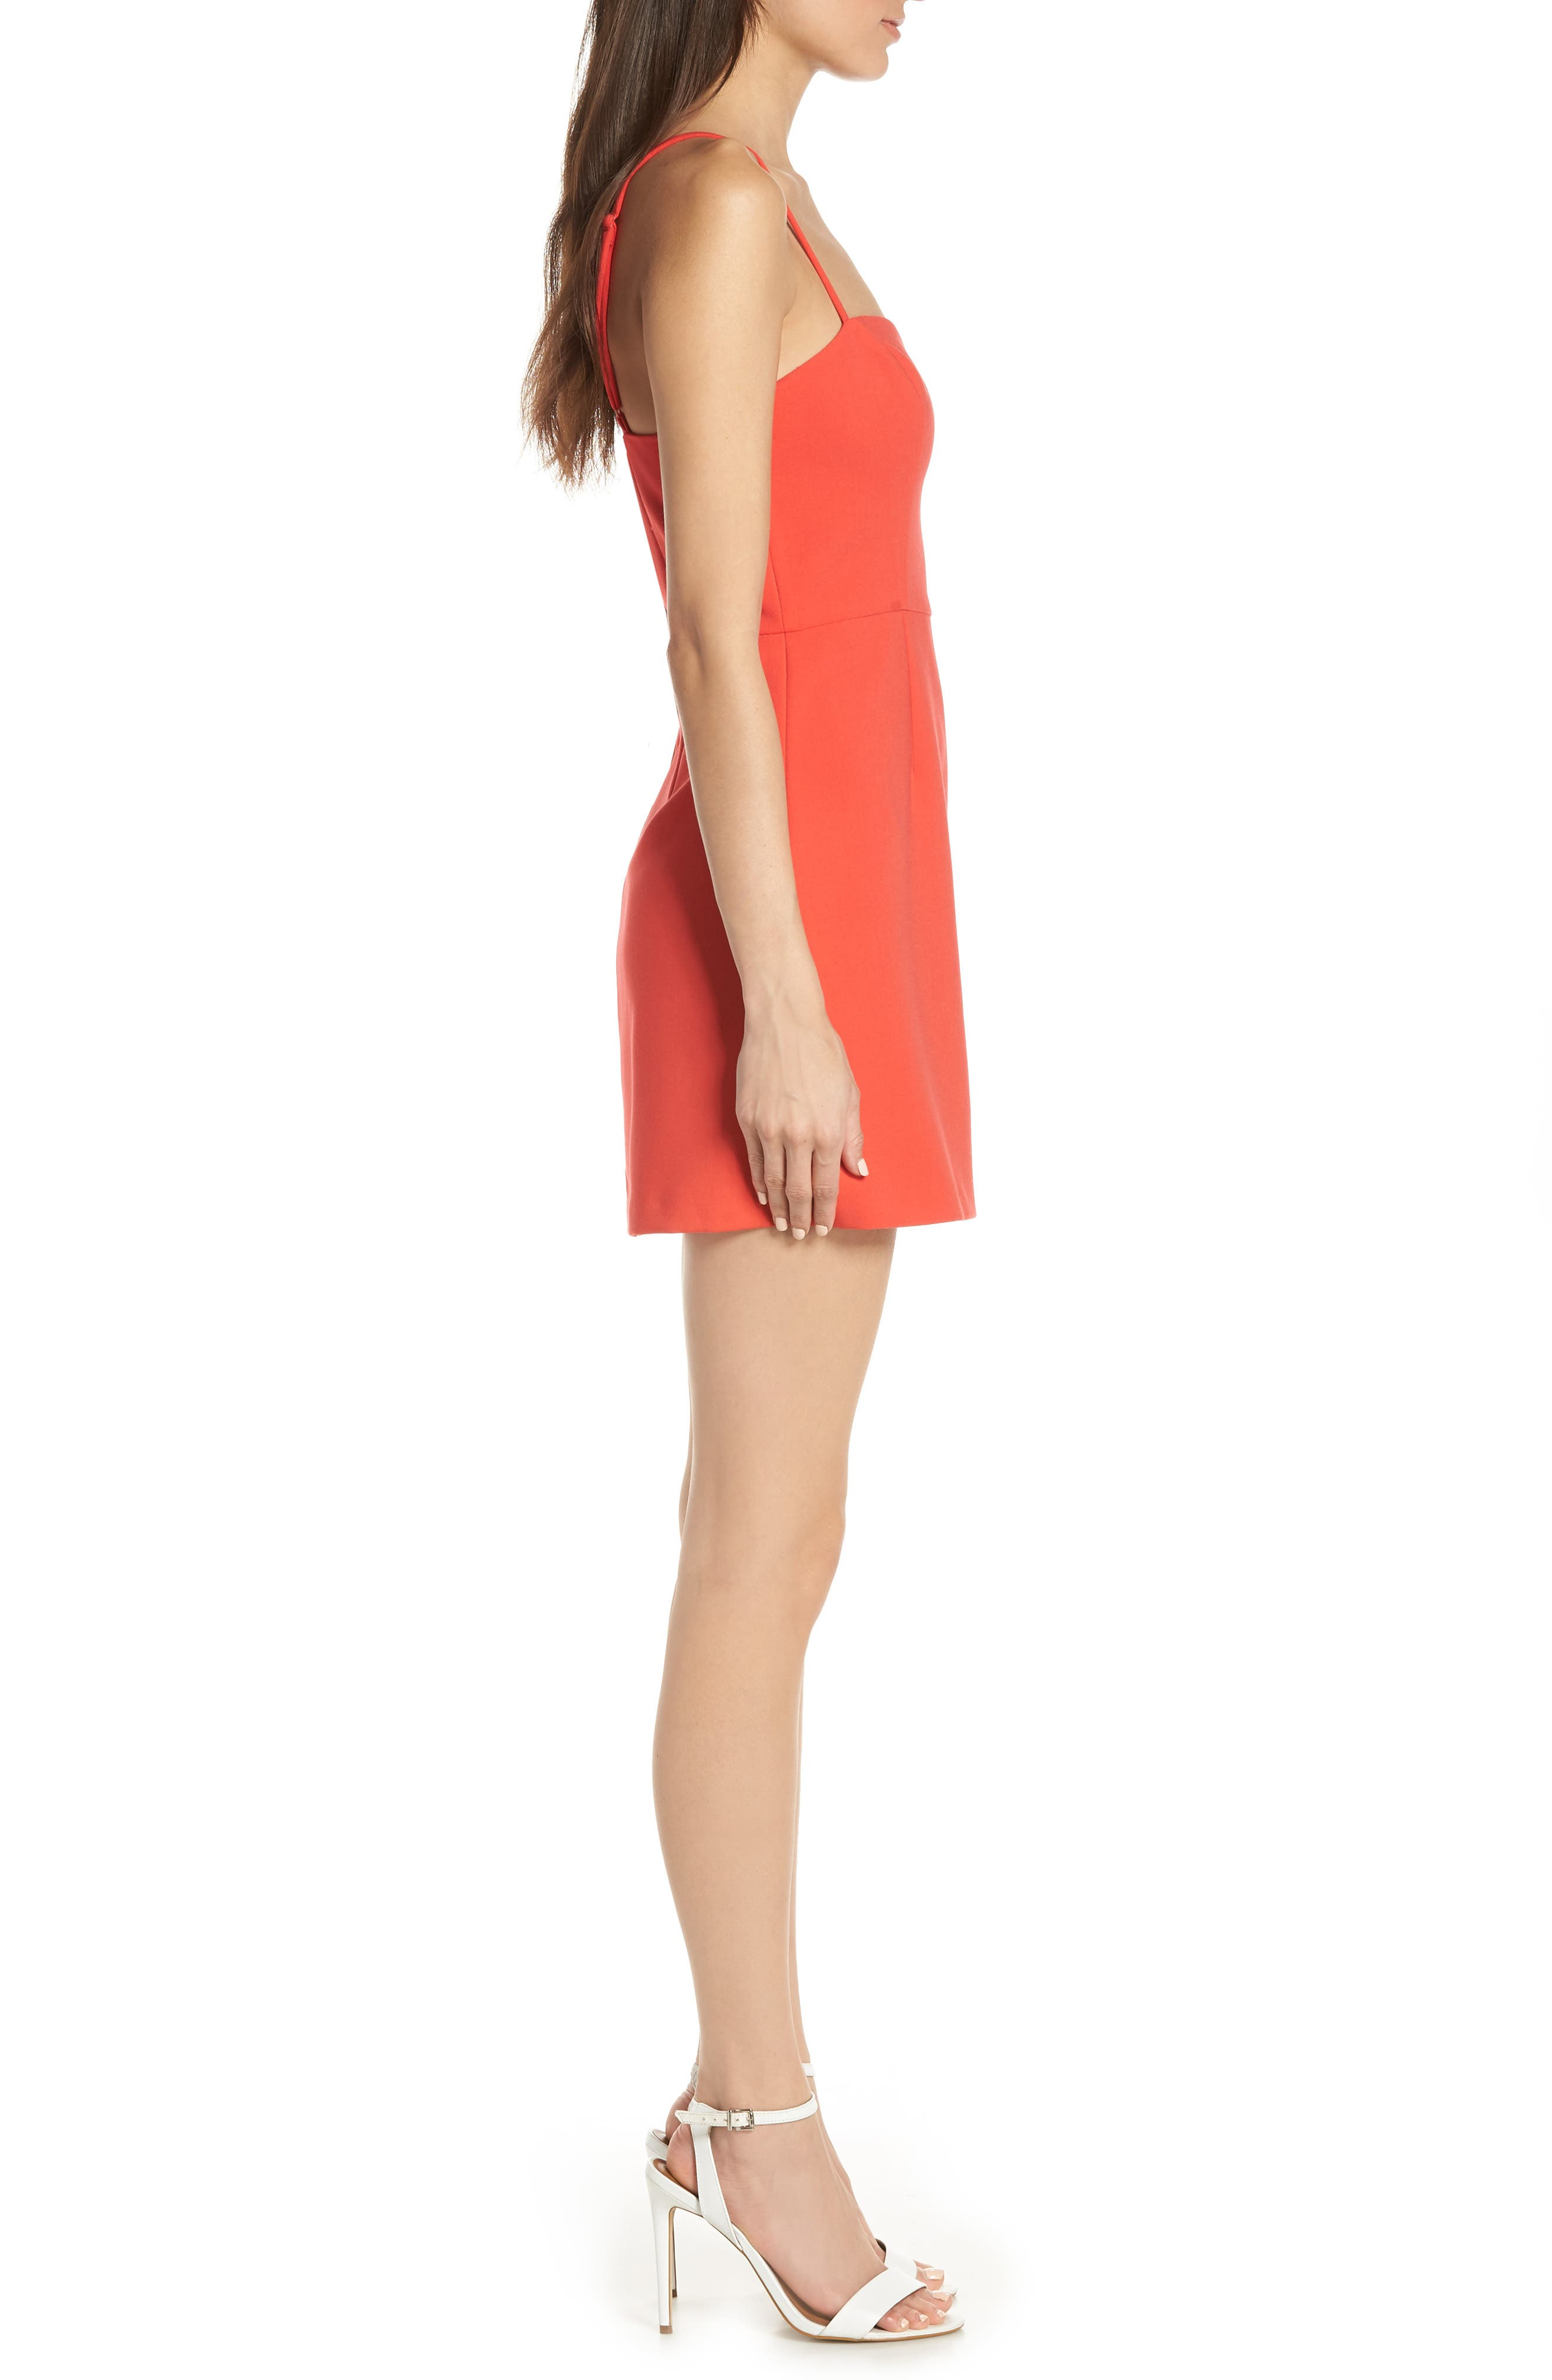 FRENCH CONNECTION, Whisper Light Sweetheart Minidress, Alternate thumbnail 4, color, FIRE CORAL